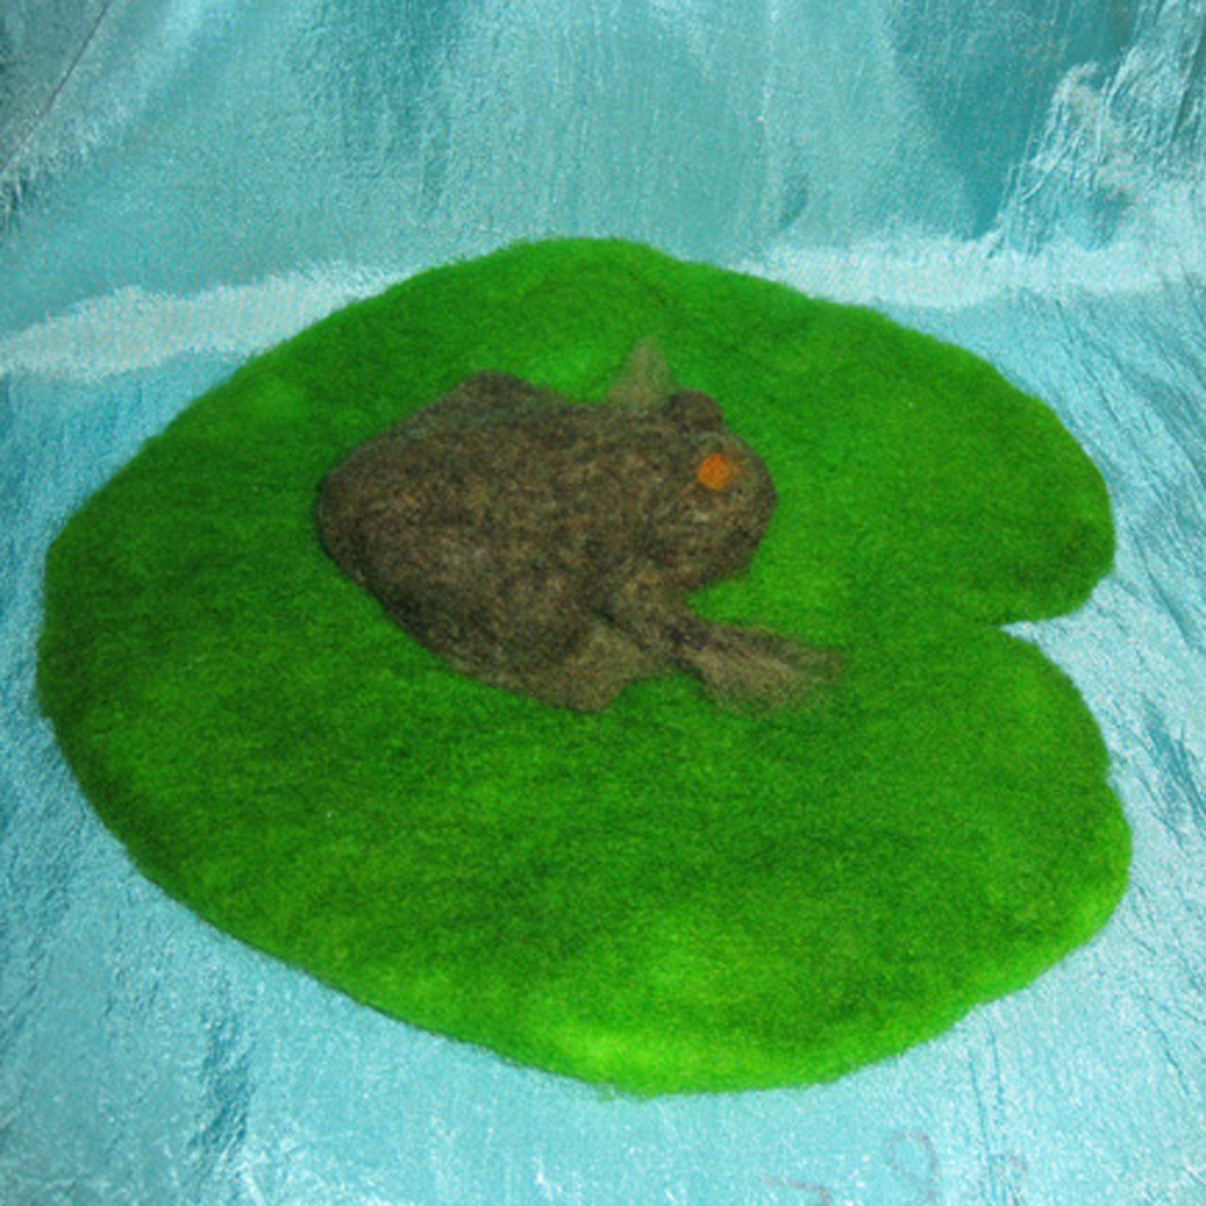 Mr Frog on his lilypad